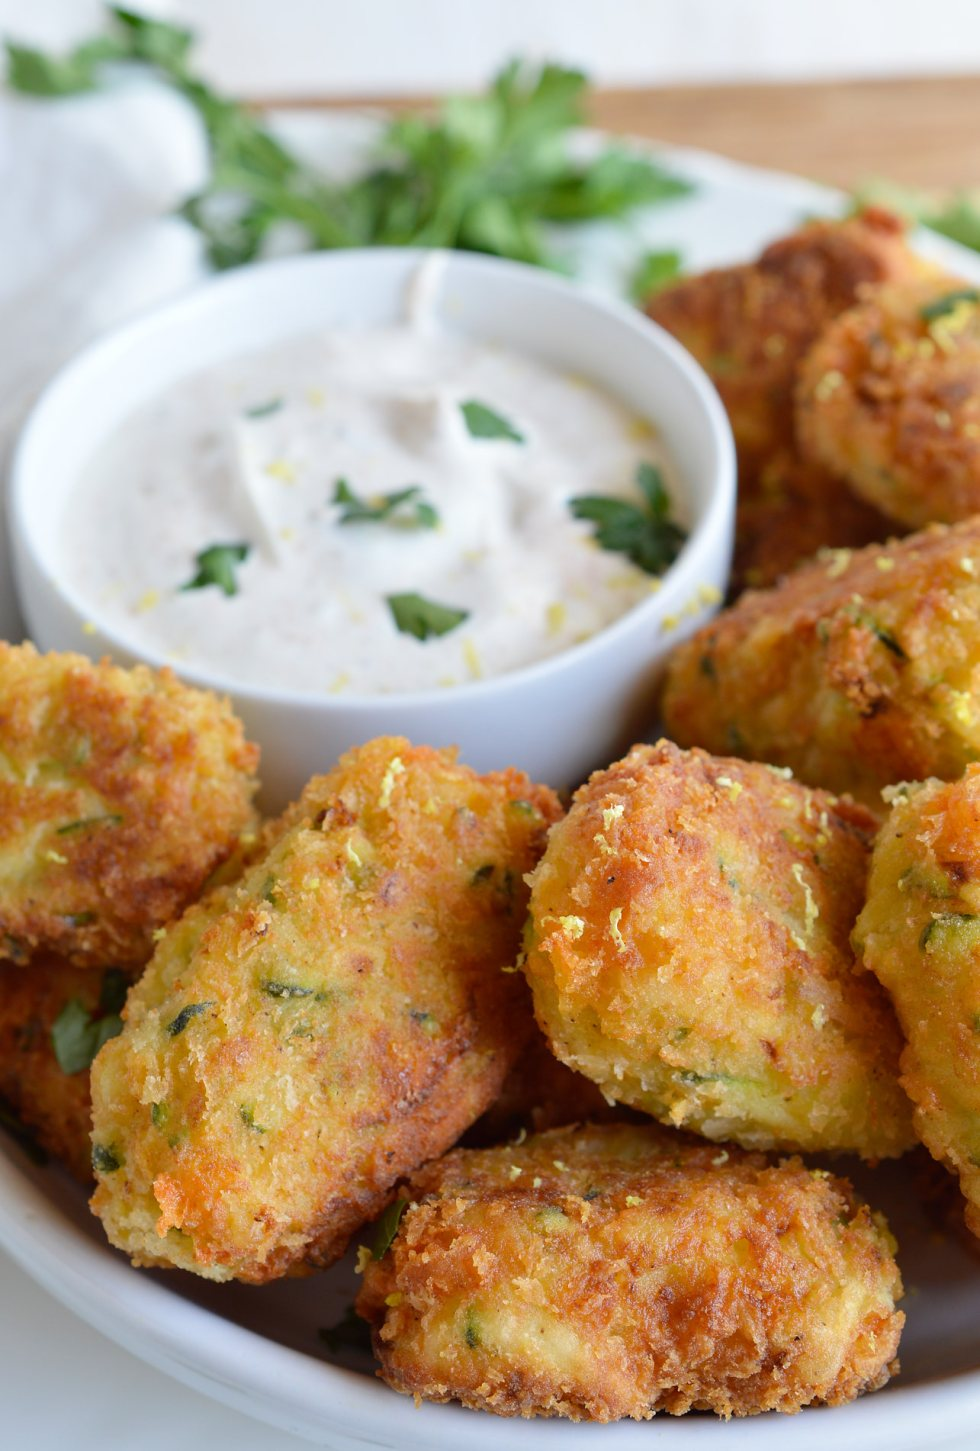 With the end of summer comes an abundance of fresh zucchini. Try this Cheesy Zucchini Tater Tots Recipe and that zucchini will be gone in no time! Cheese, zucchini and potatoes fried up into homemade tater tots. vegetarian